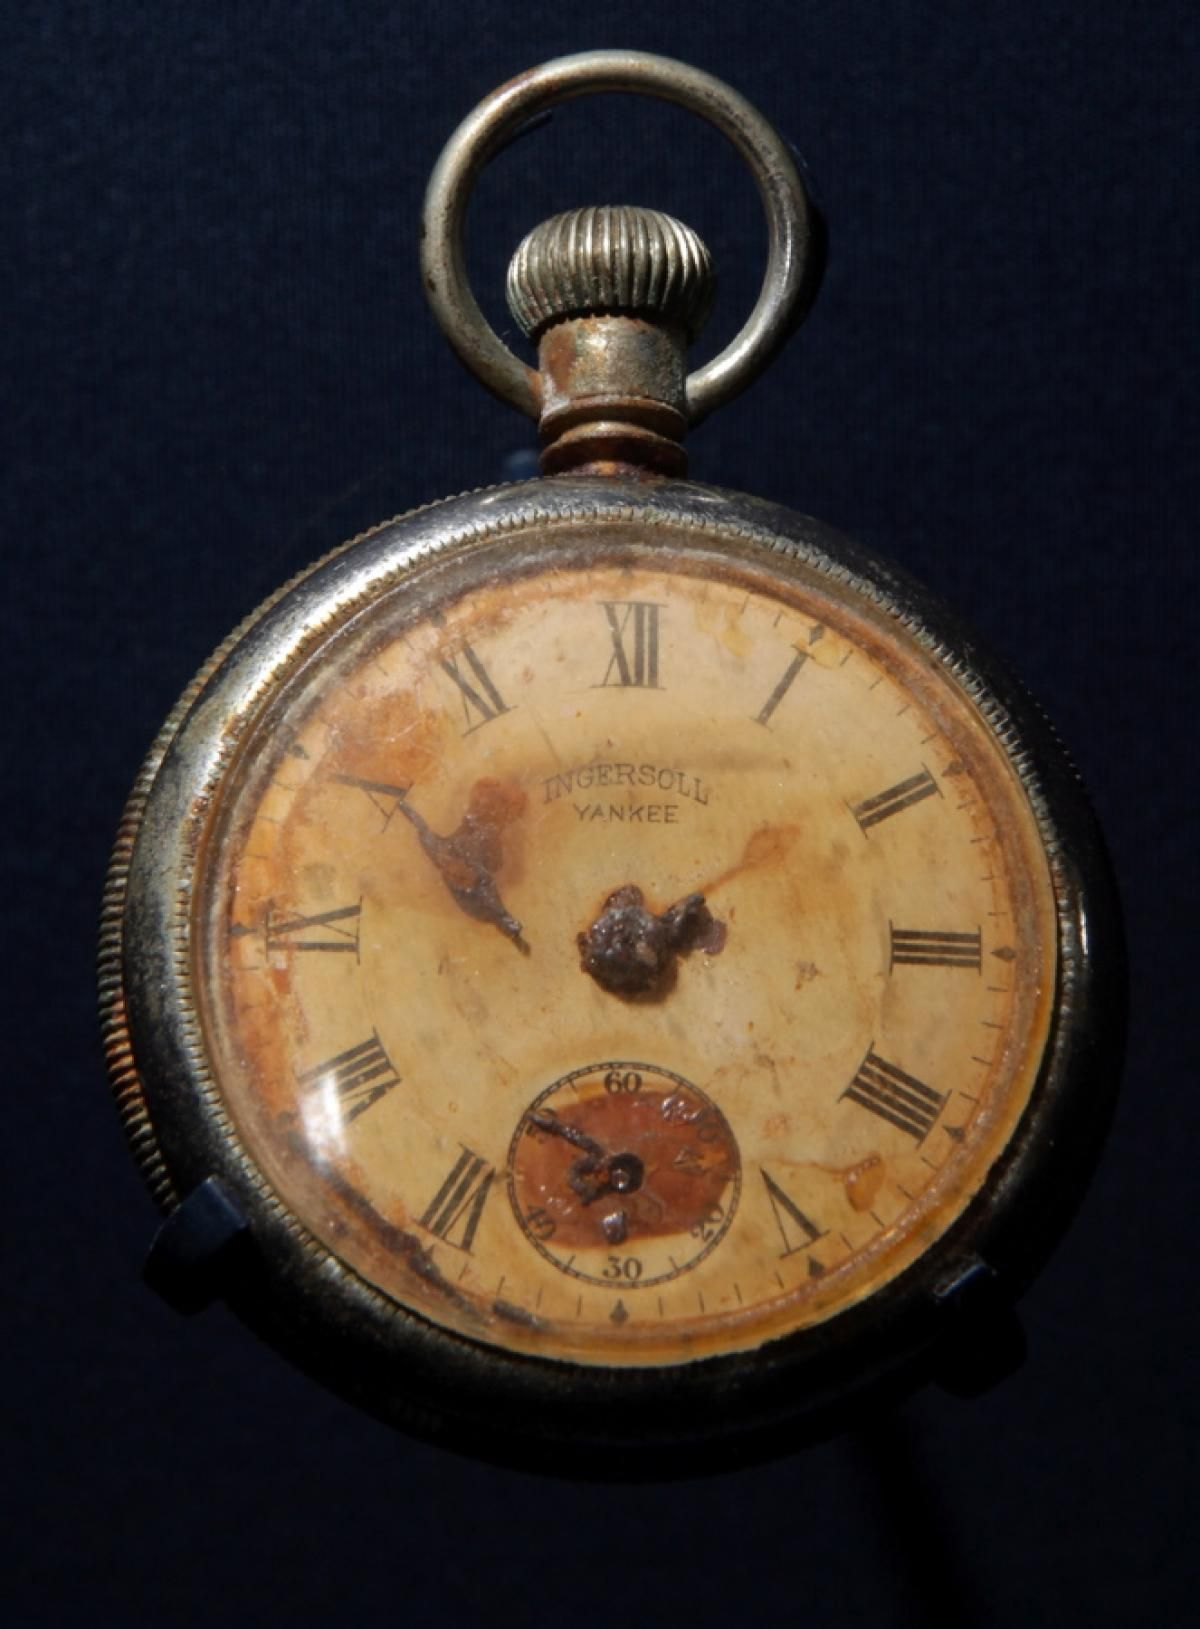 A pocket watch recovered from the body of Titanic steward Sidney Sedunary  and displays the time ten minutes to two d4743917198